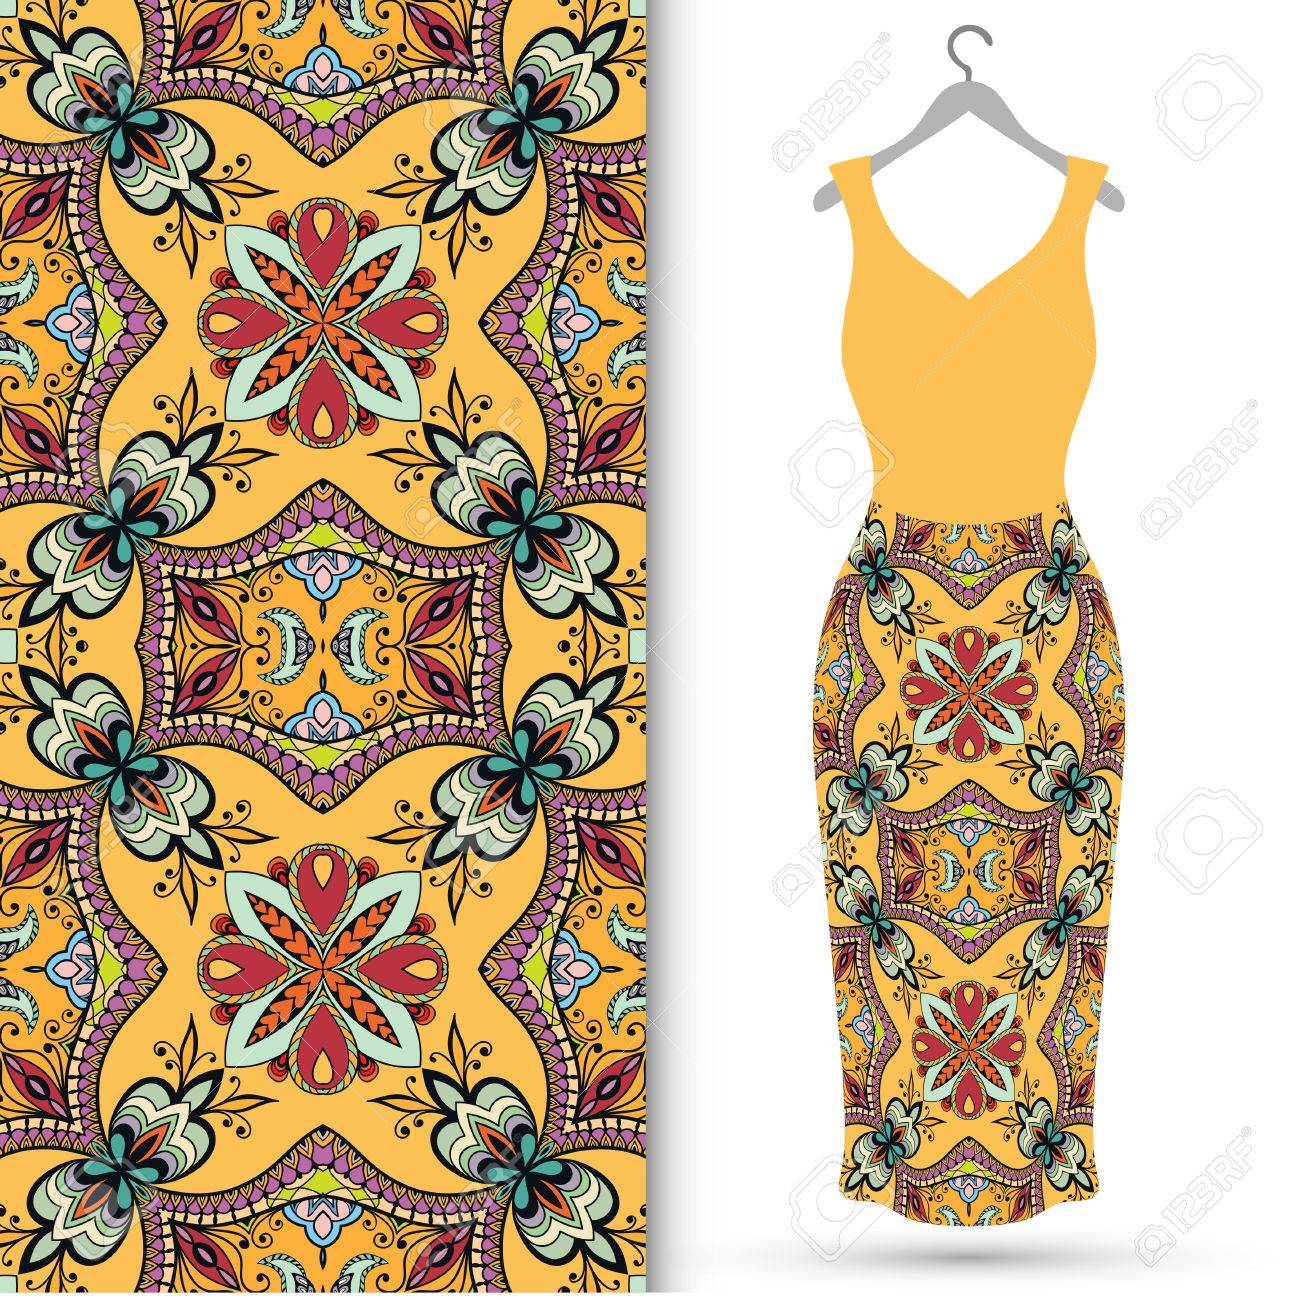 Fashion Illustration Women S Dress On A Hanger And Seamless Royalty Free Cliparts Vectors And Stock Illustration Image 53302883